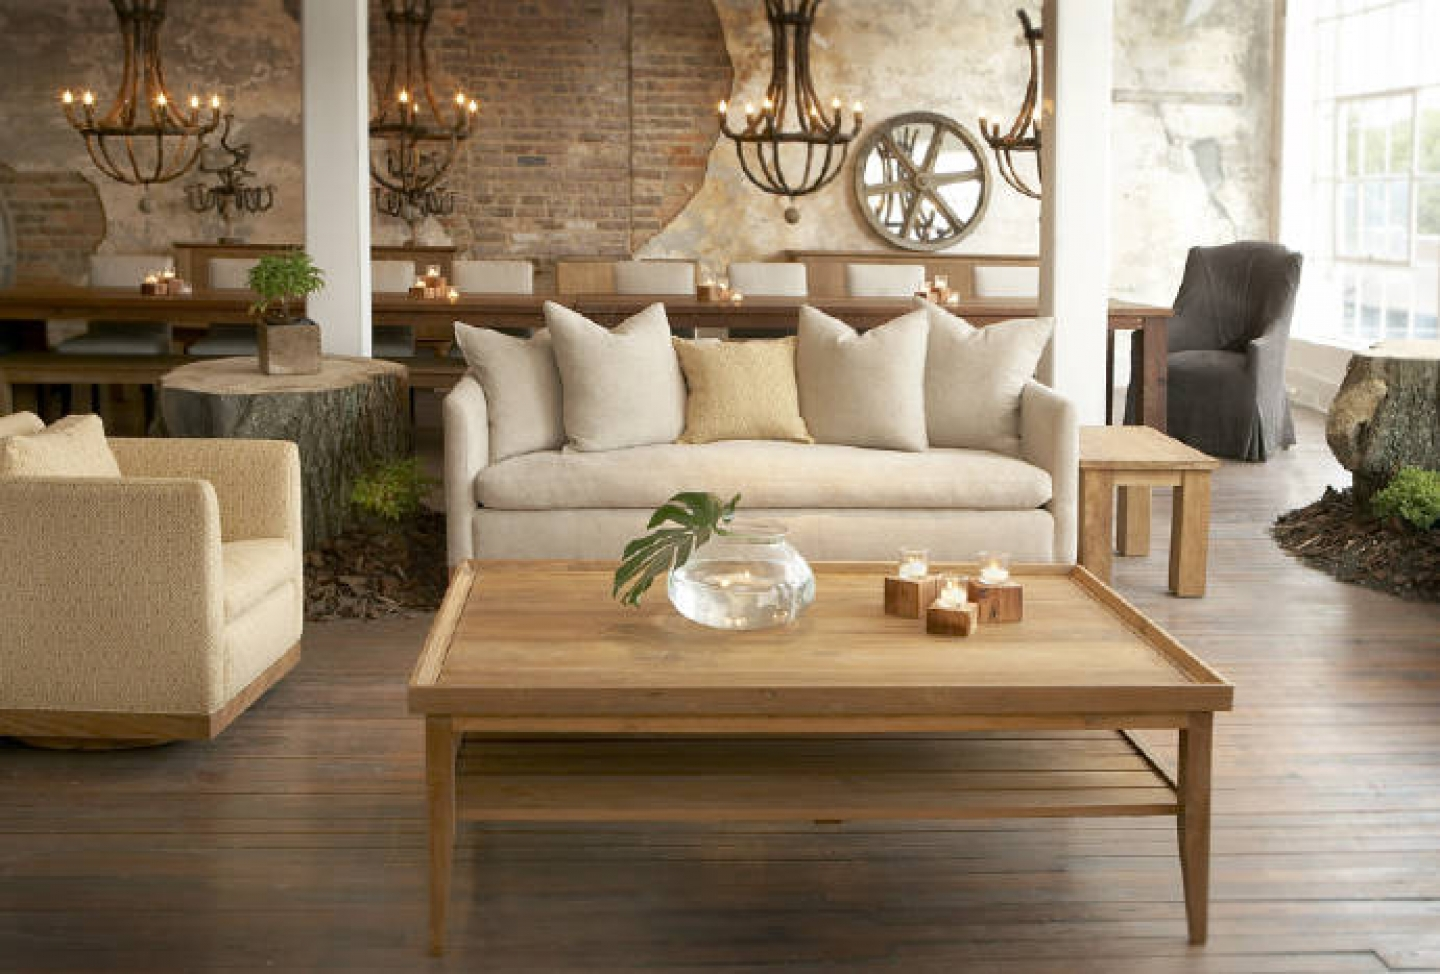 Give A Clean Look To Your Home